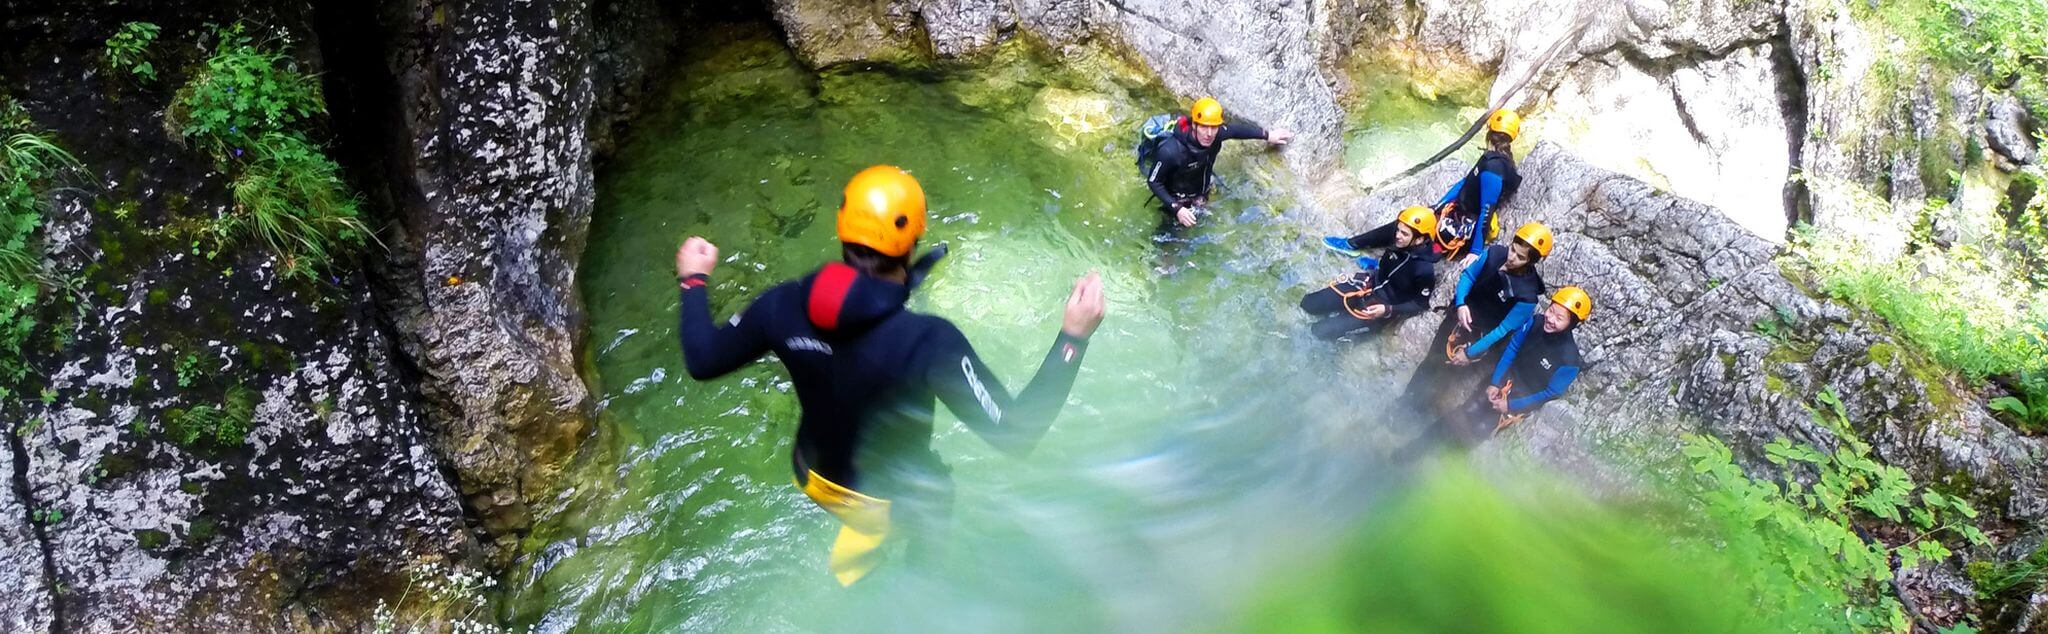 Canyoning in San Salvador (Medio Cudeyo)